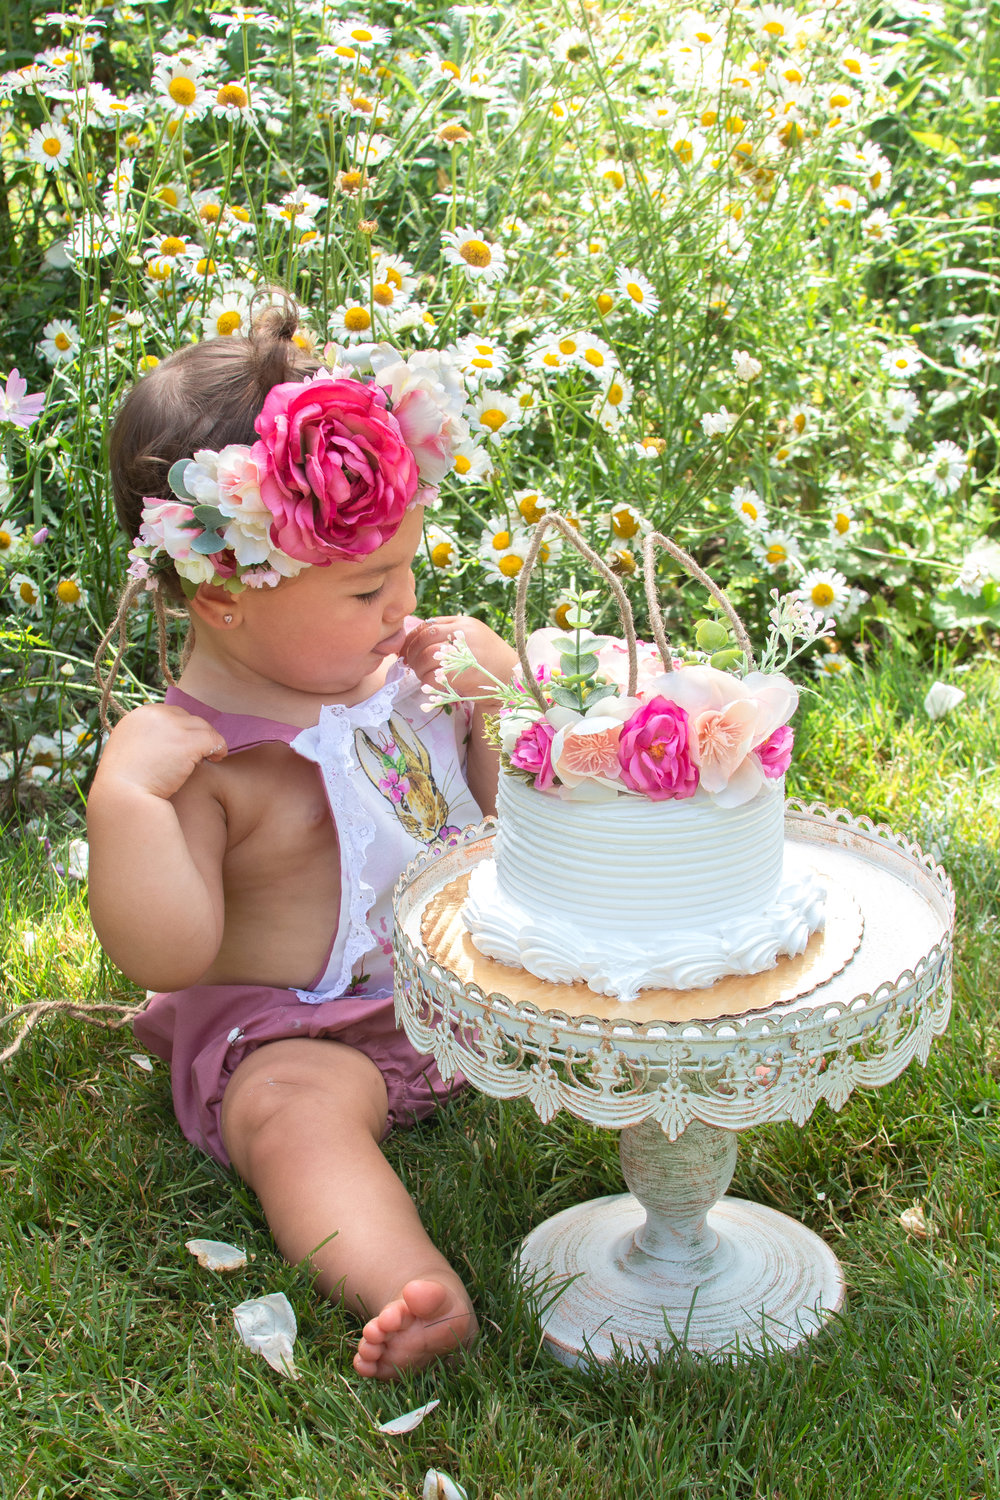 Birthday girl with flower crown sitting with a cake in Ringwood, New Jersey Botanical Garden.Photograph by Laughing Heart Photography.